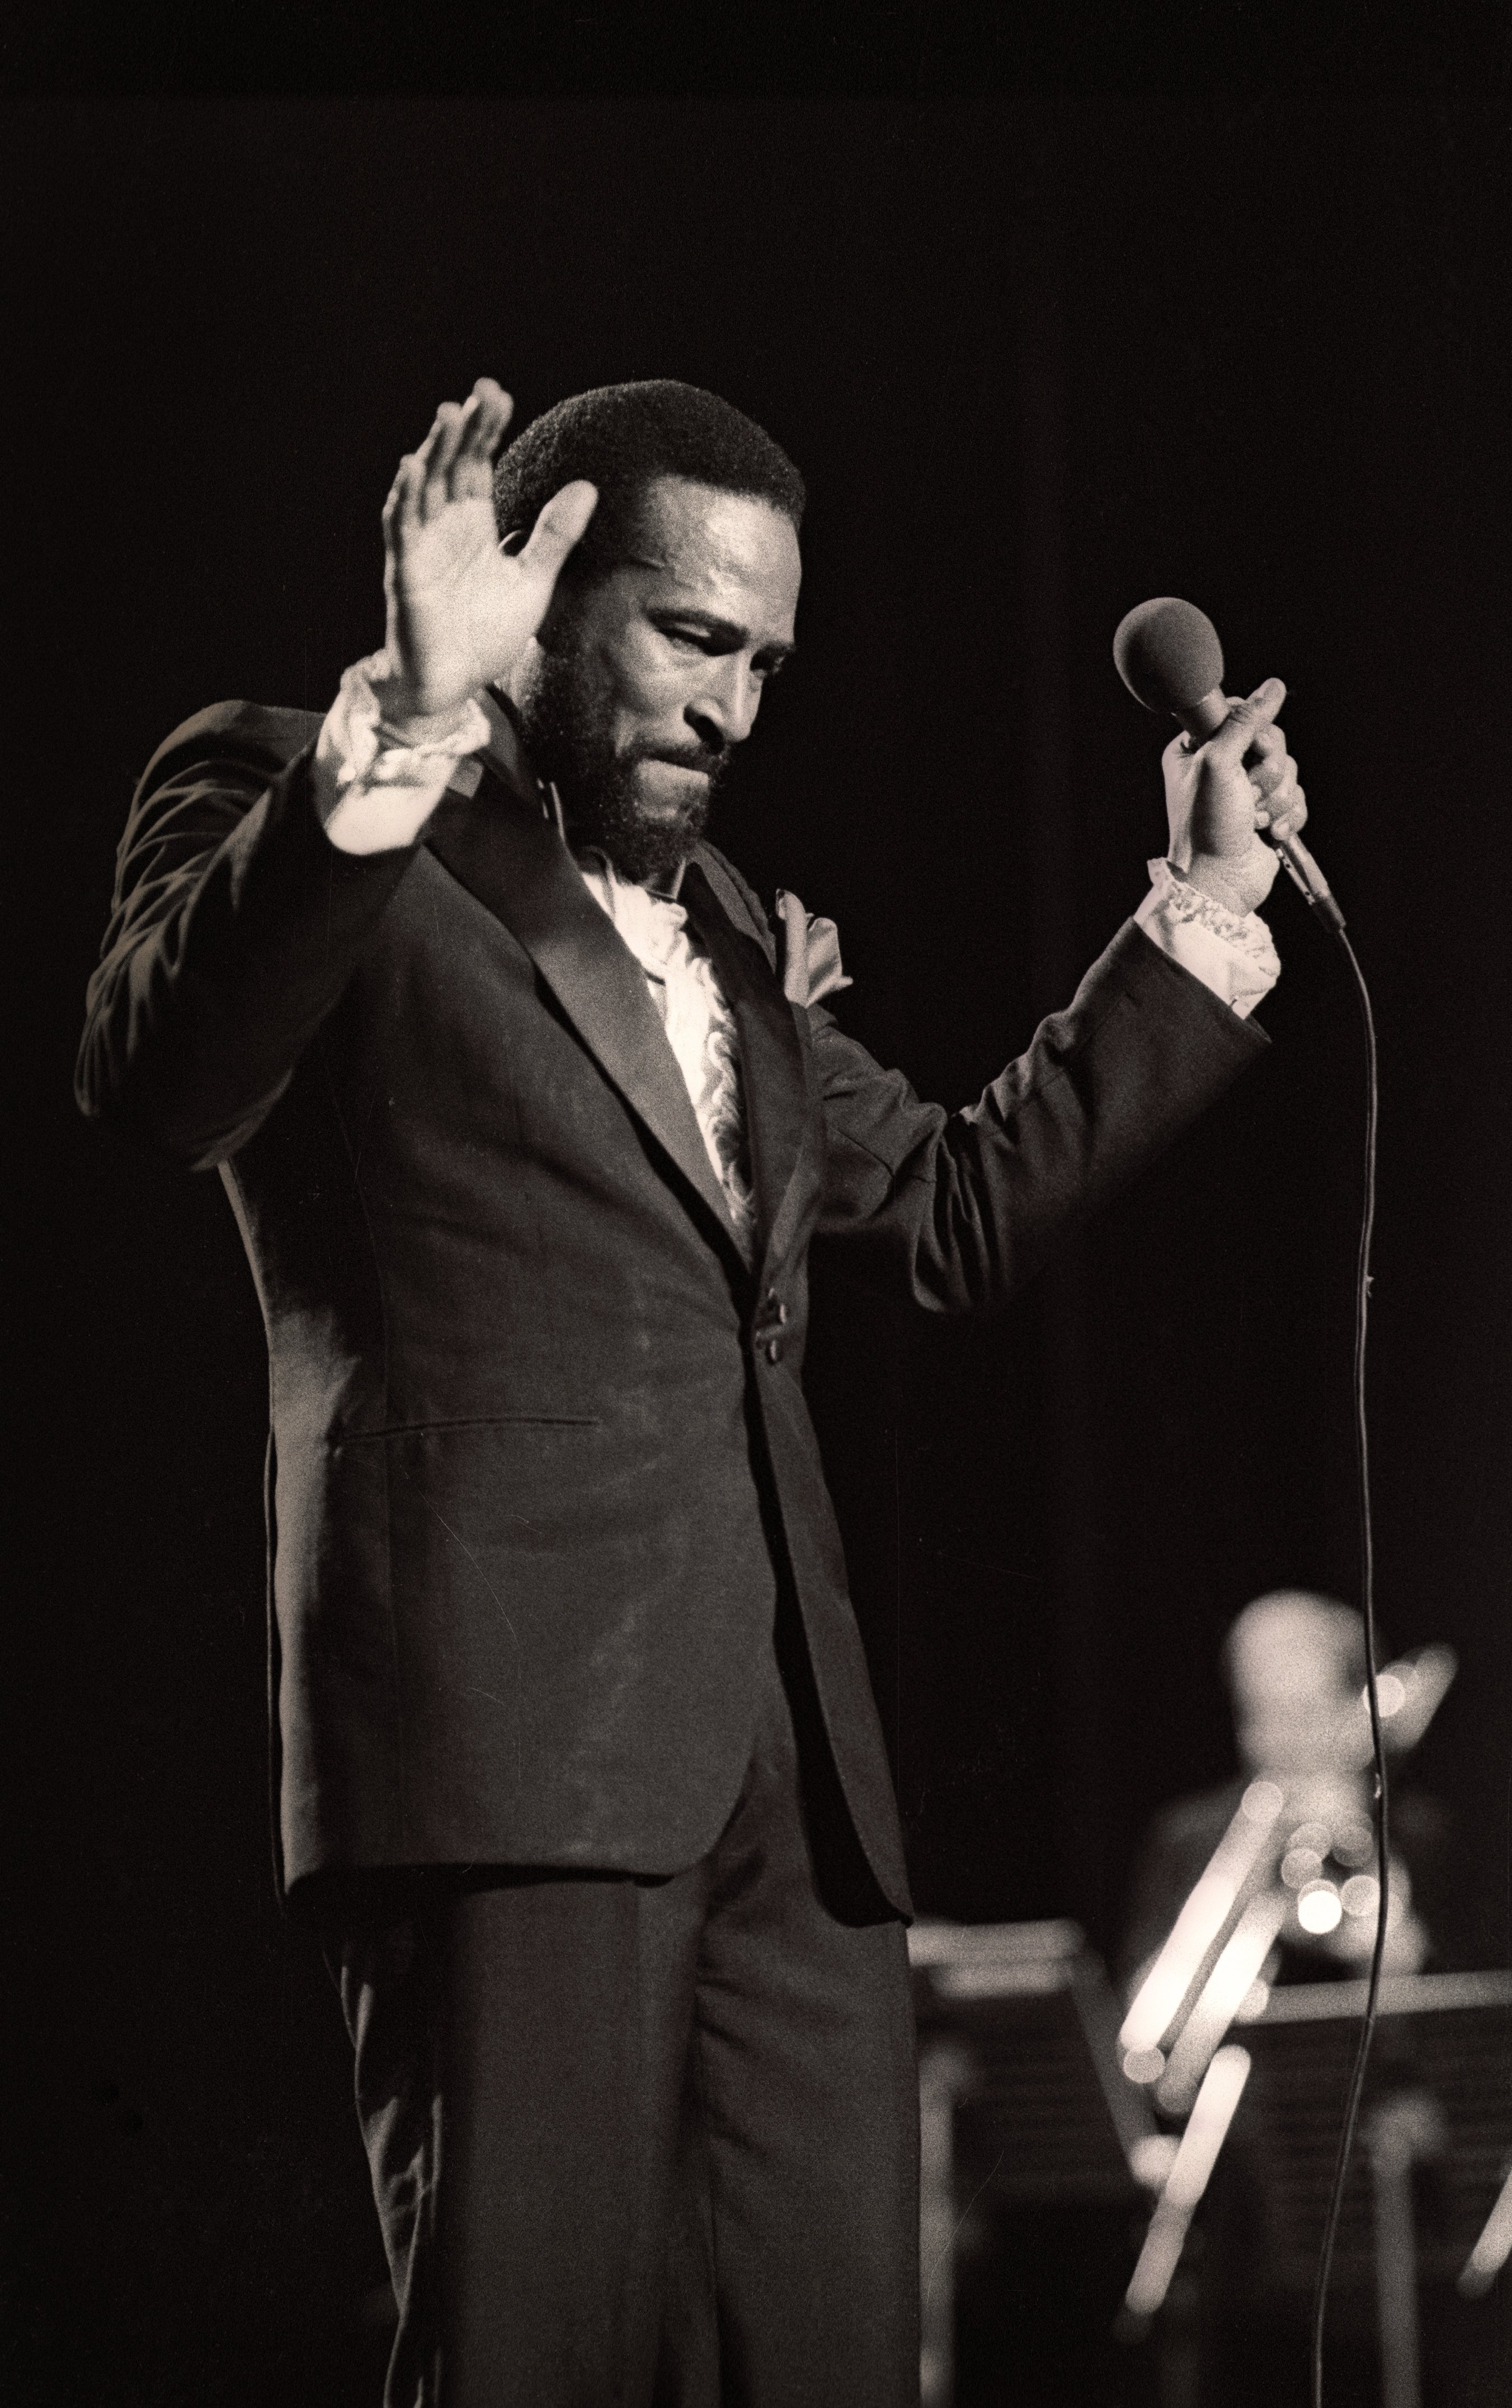 Marvin Gaye performing at Casino, Oostende, Belgium on April 7, 1981.   Source: Getty Images